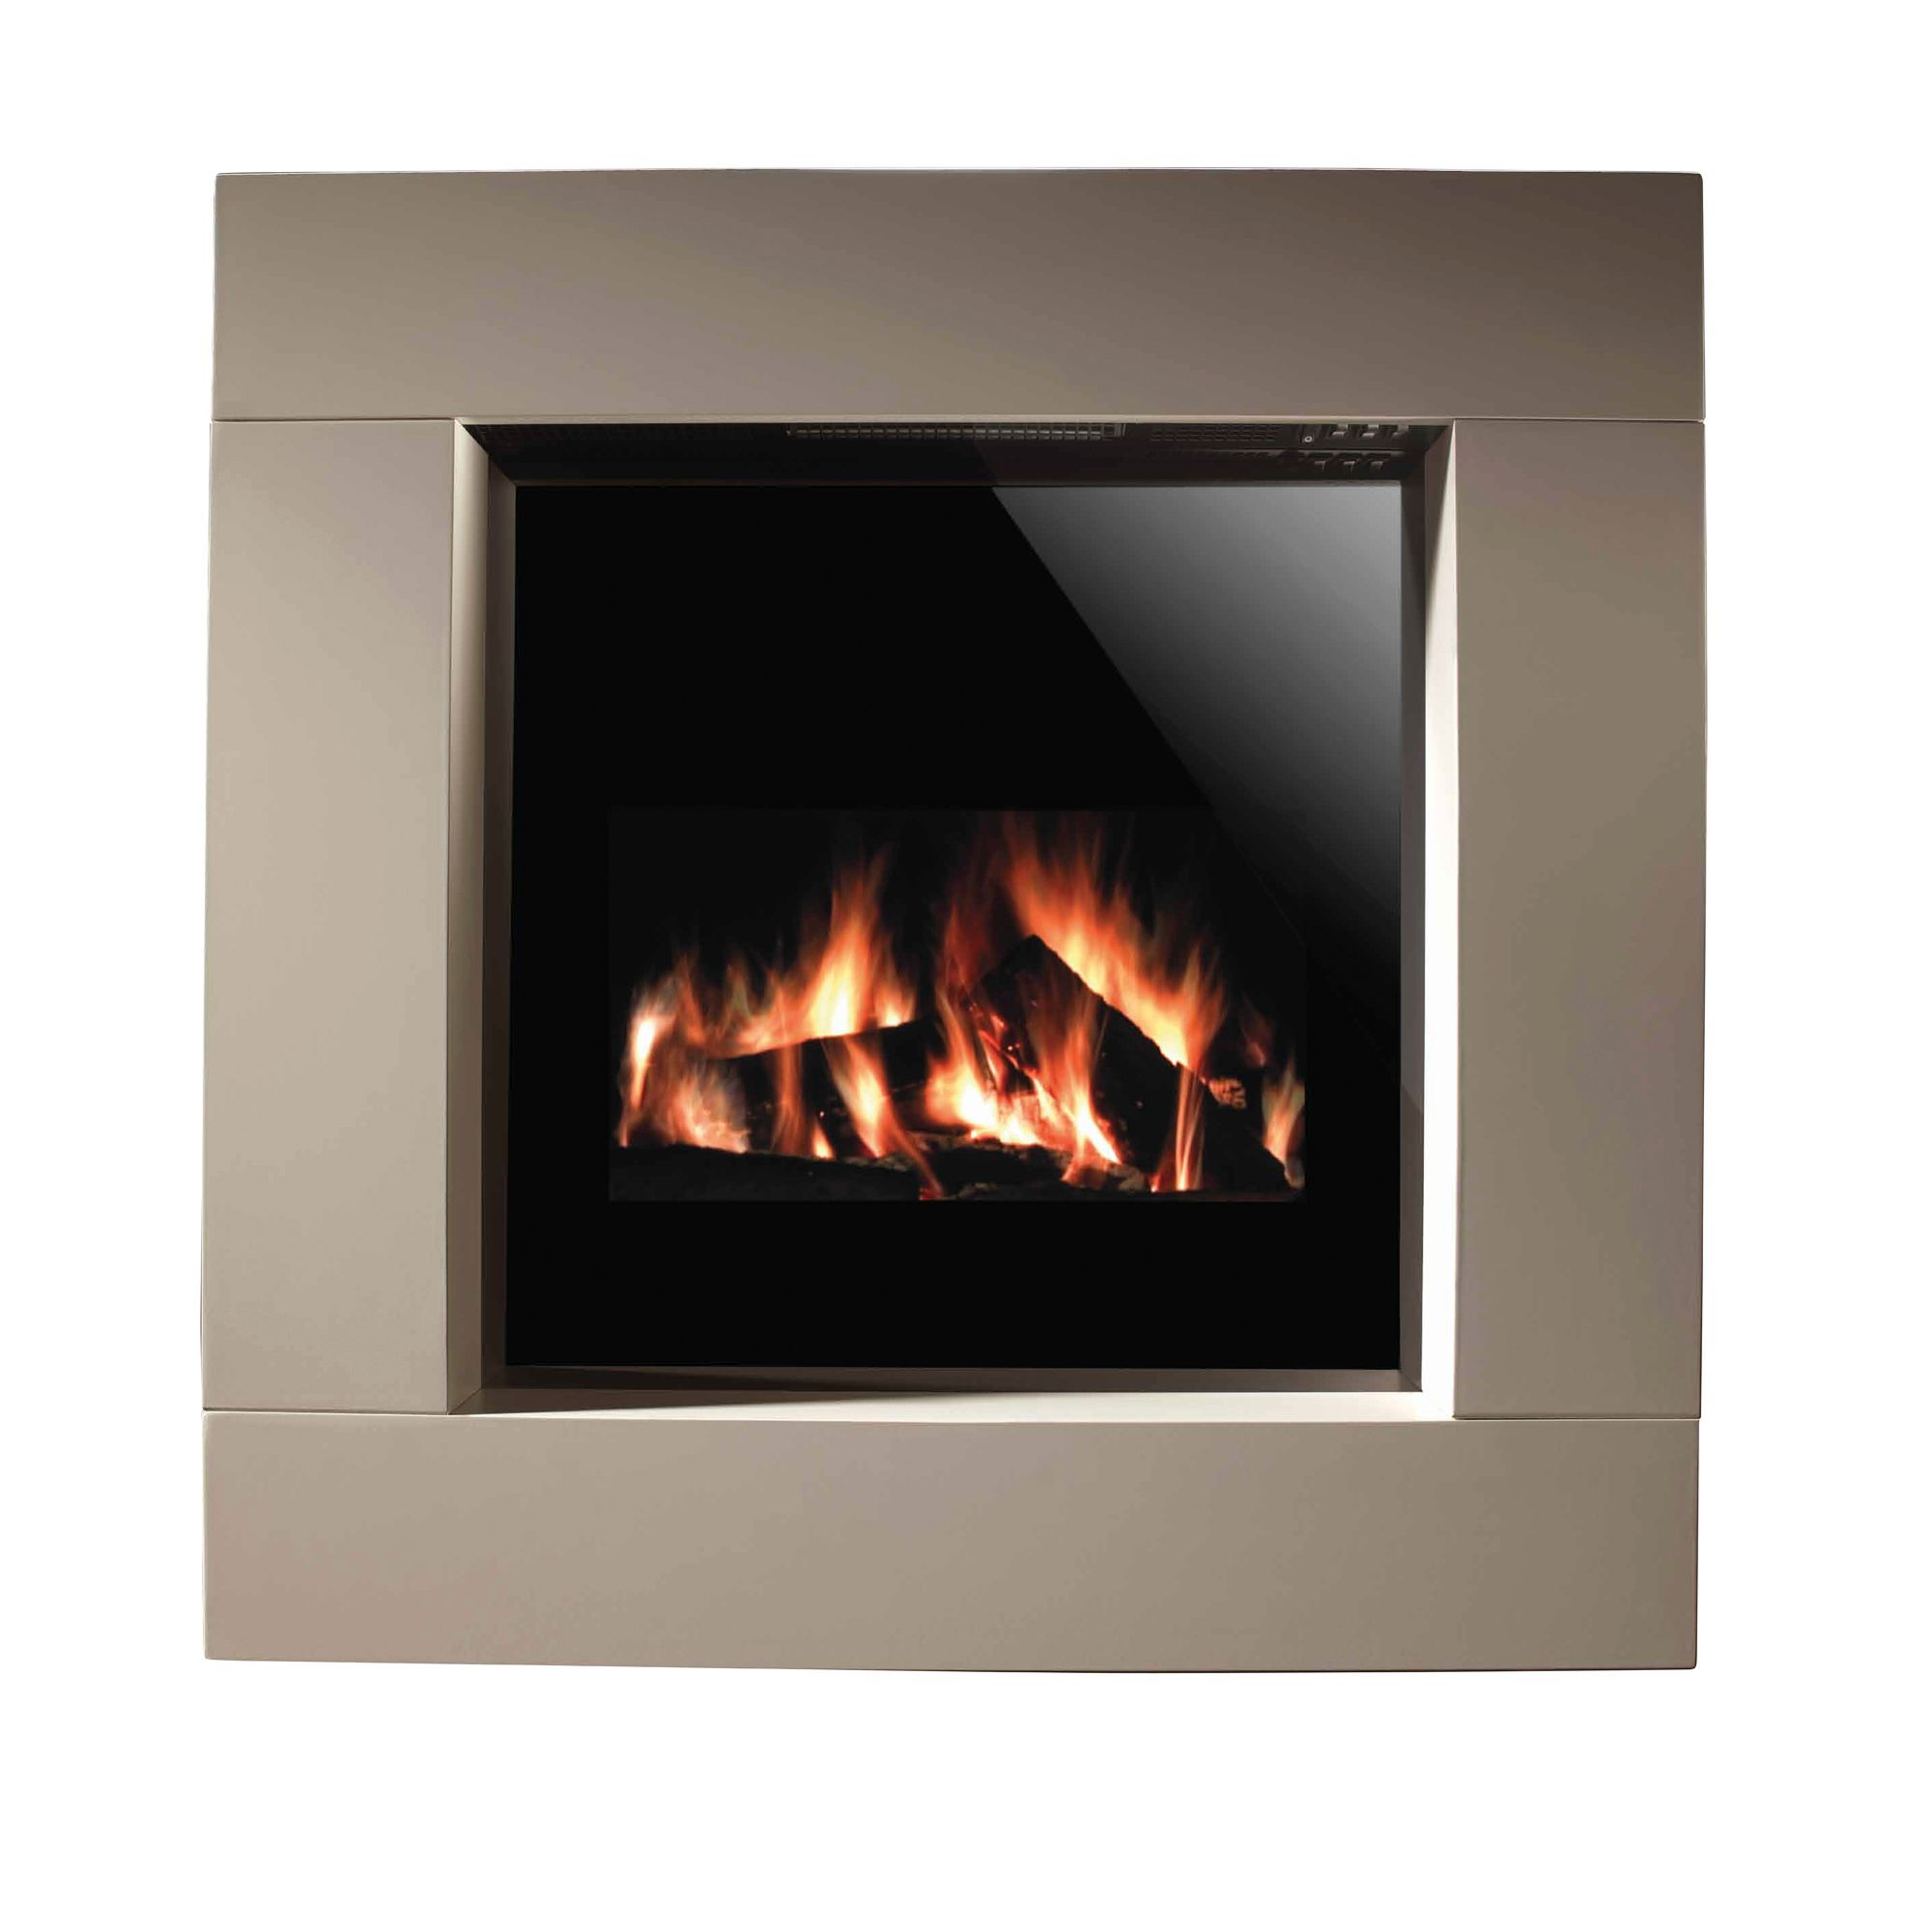 Focal Point Electric Fire: Focal Point Elegance Chrome Inset Gas Fire Suite